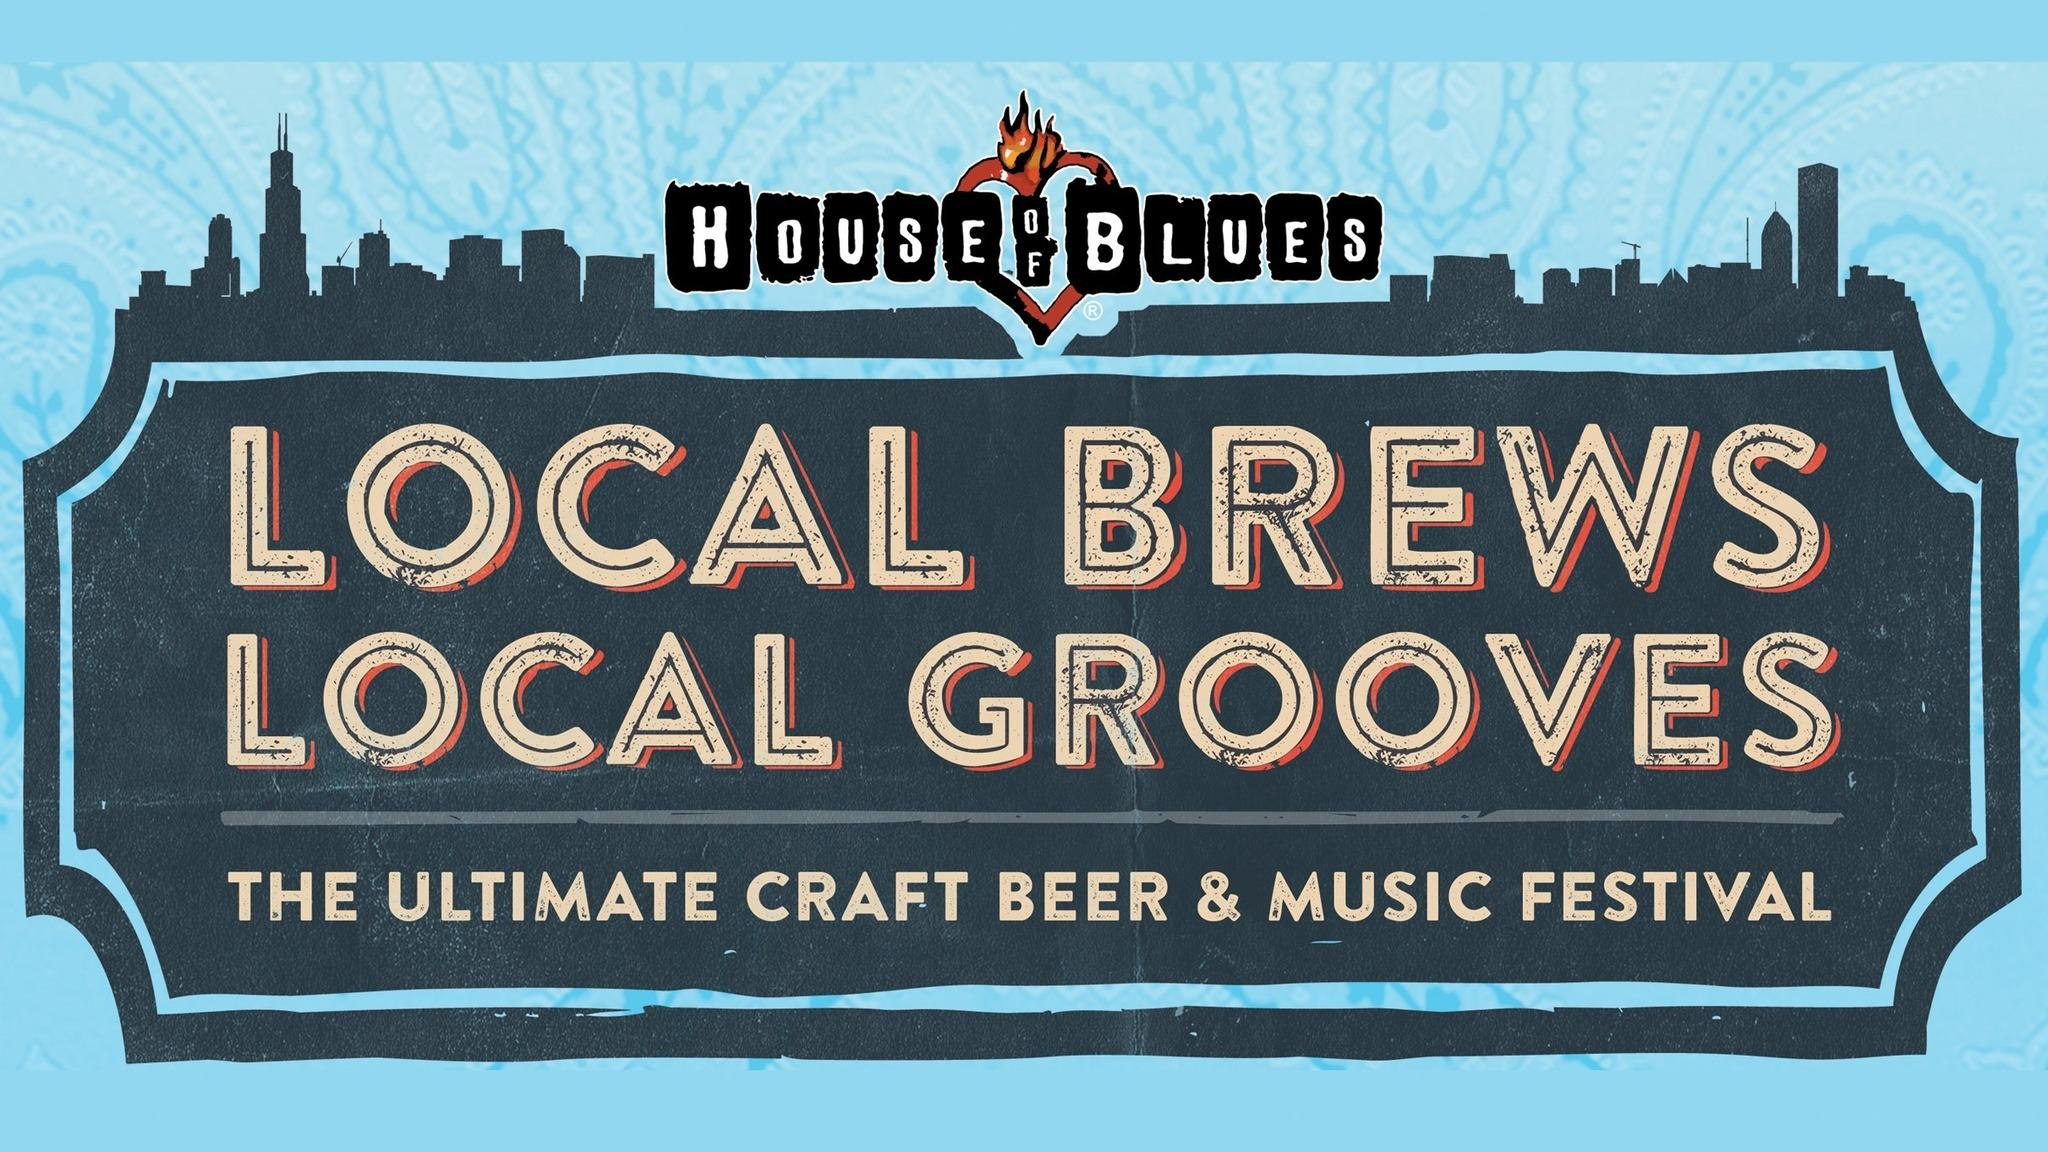 Local Brews Local Grooves at House of Blues Chicago